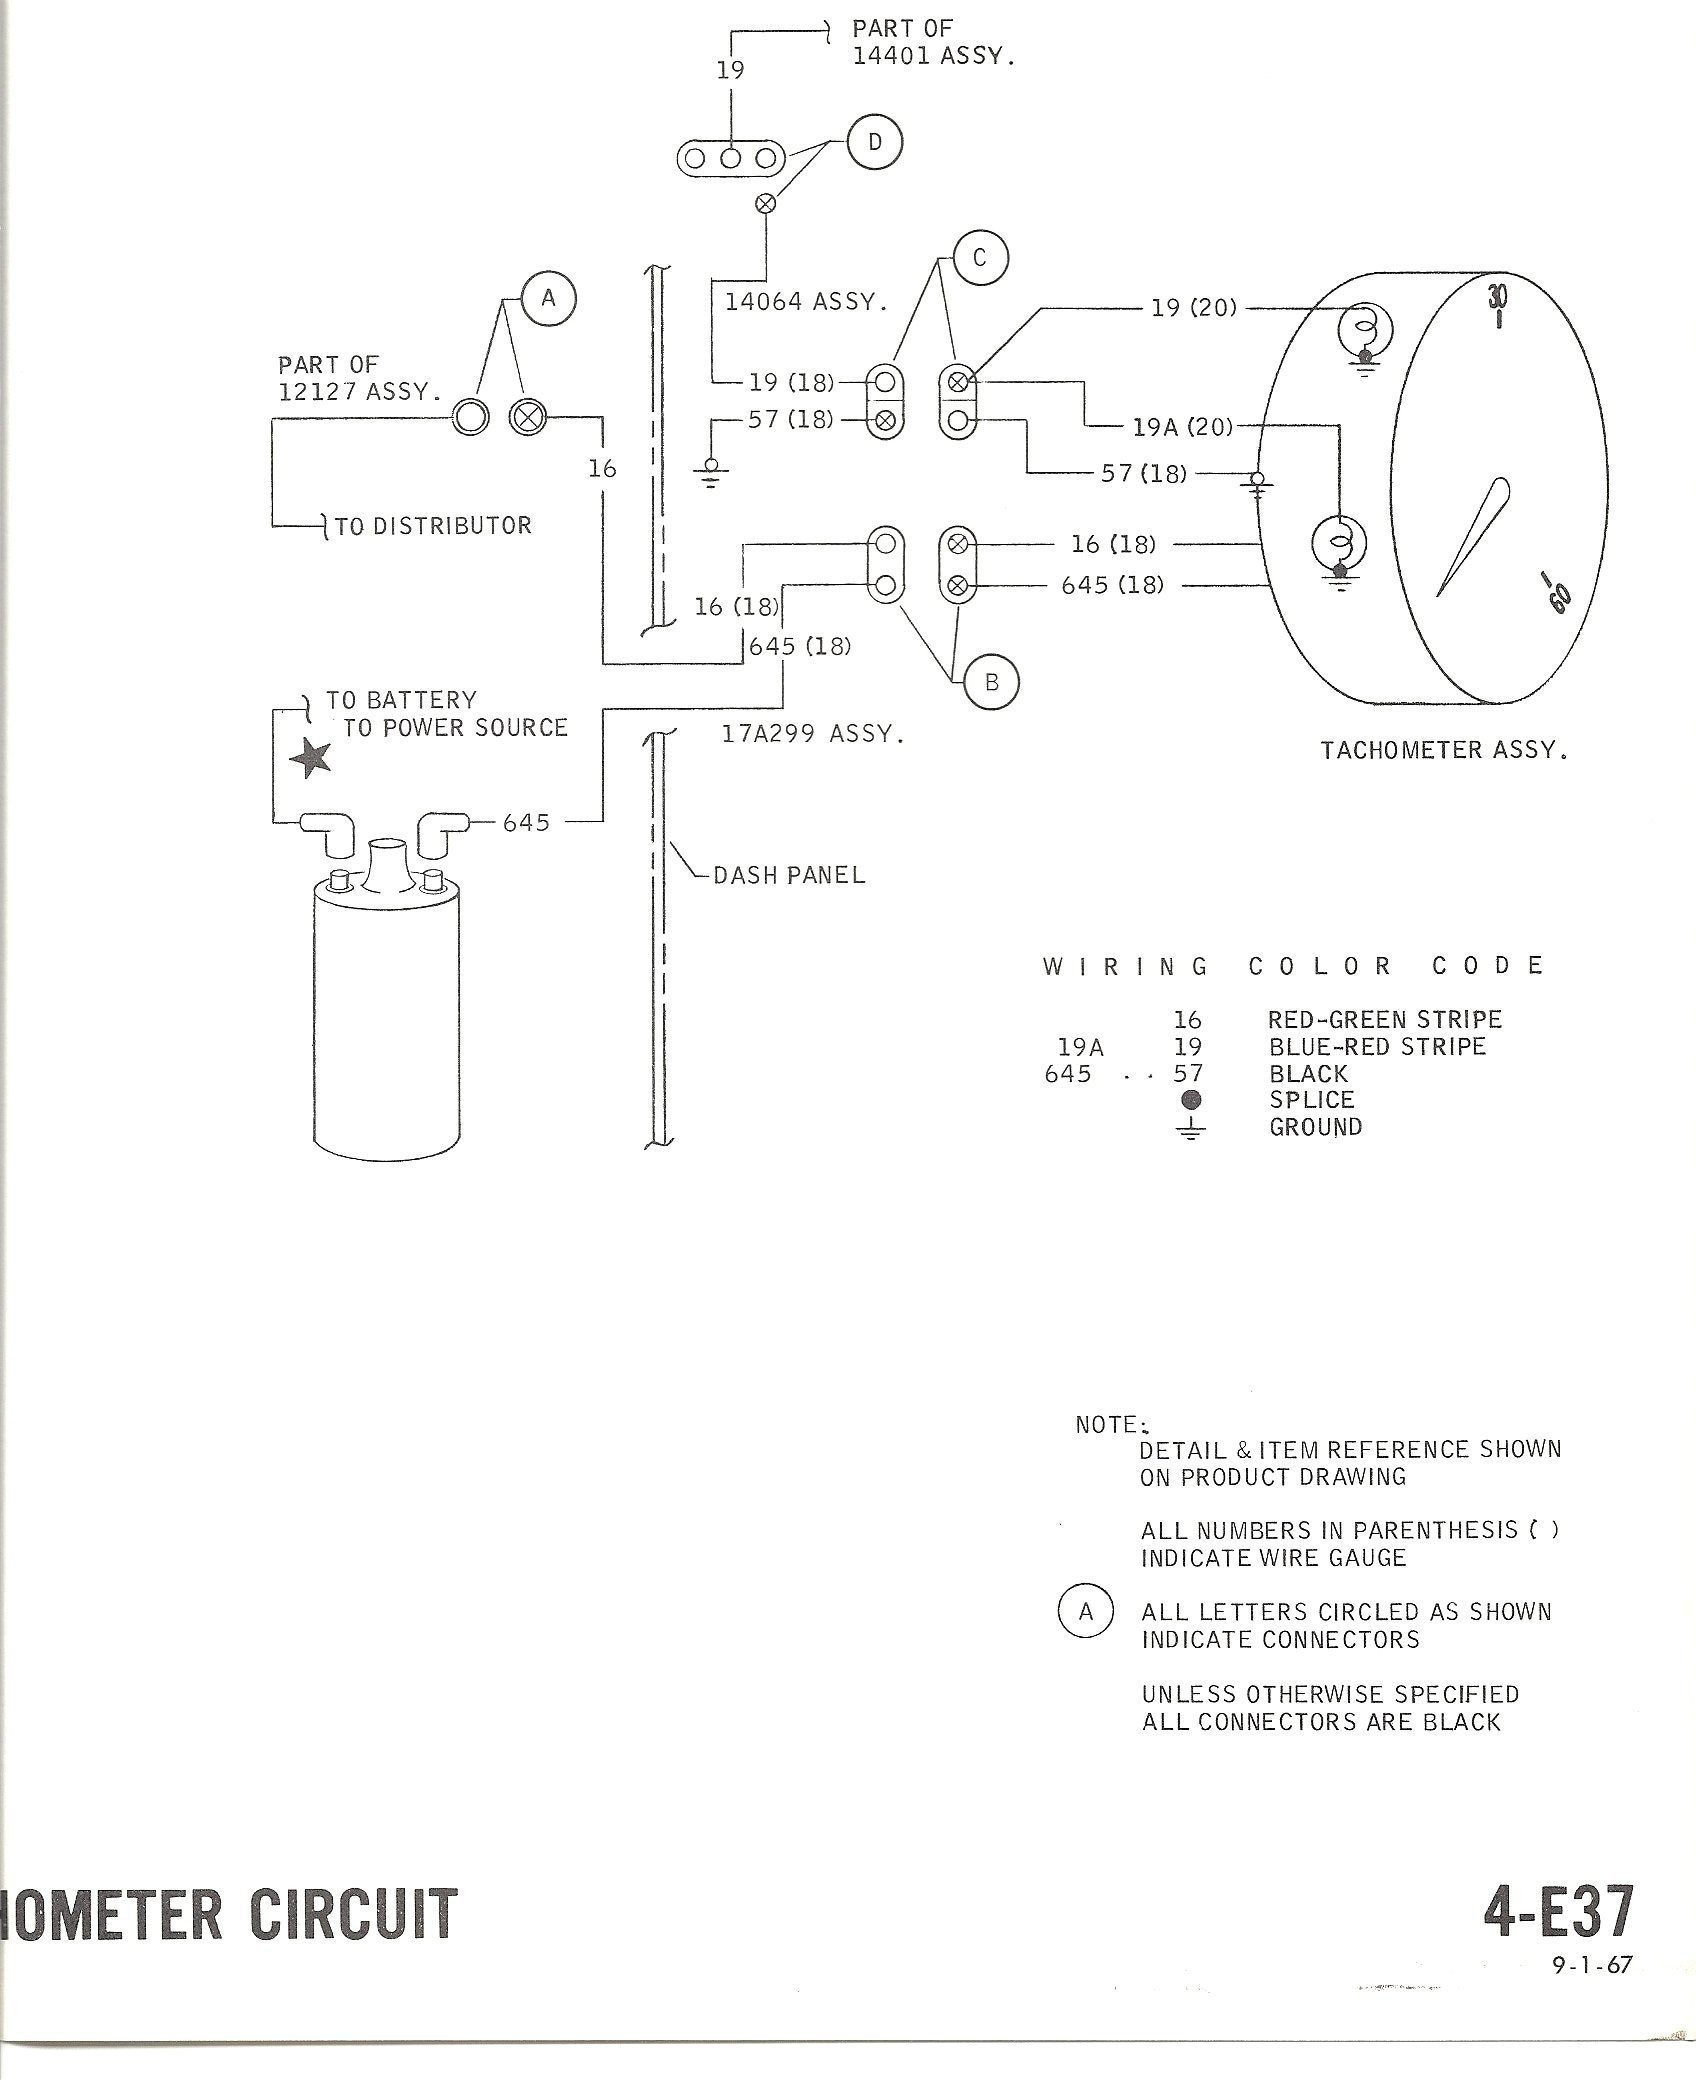 diagram] wiring diagram for sunpro tach full version hd quality sunpro tach  - sywiring.villaroveri.it  villa roveri